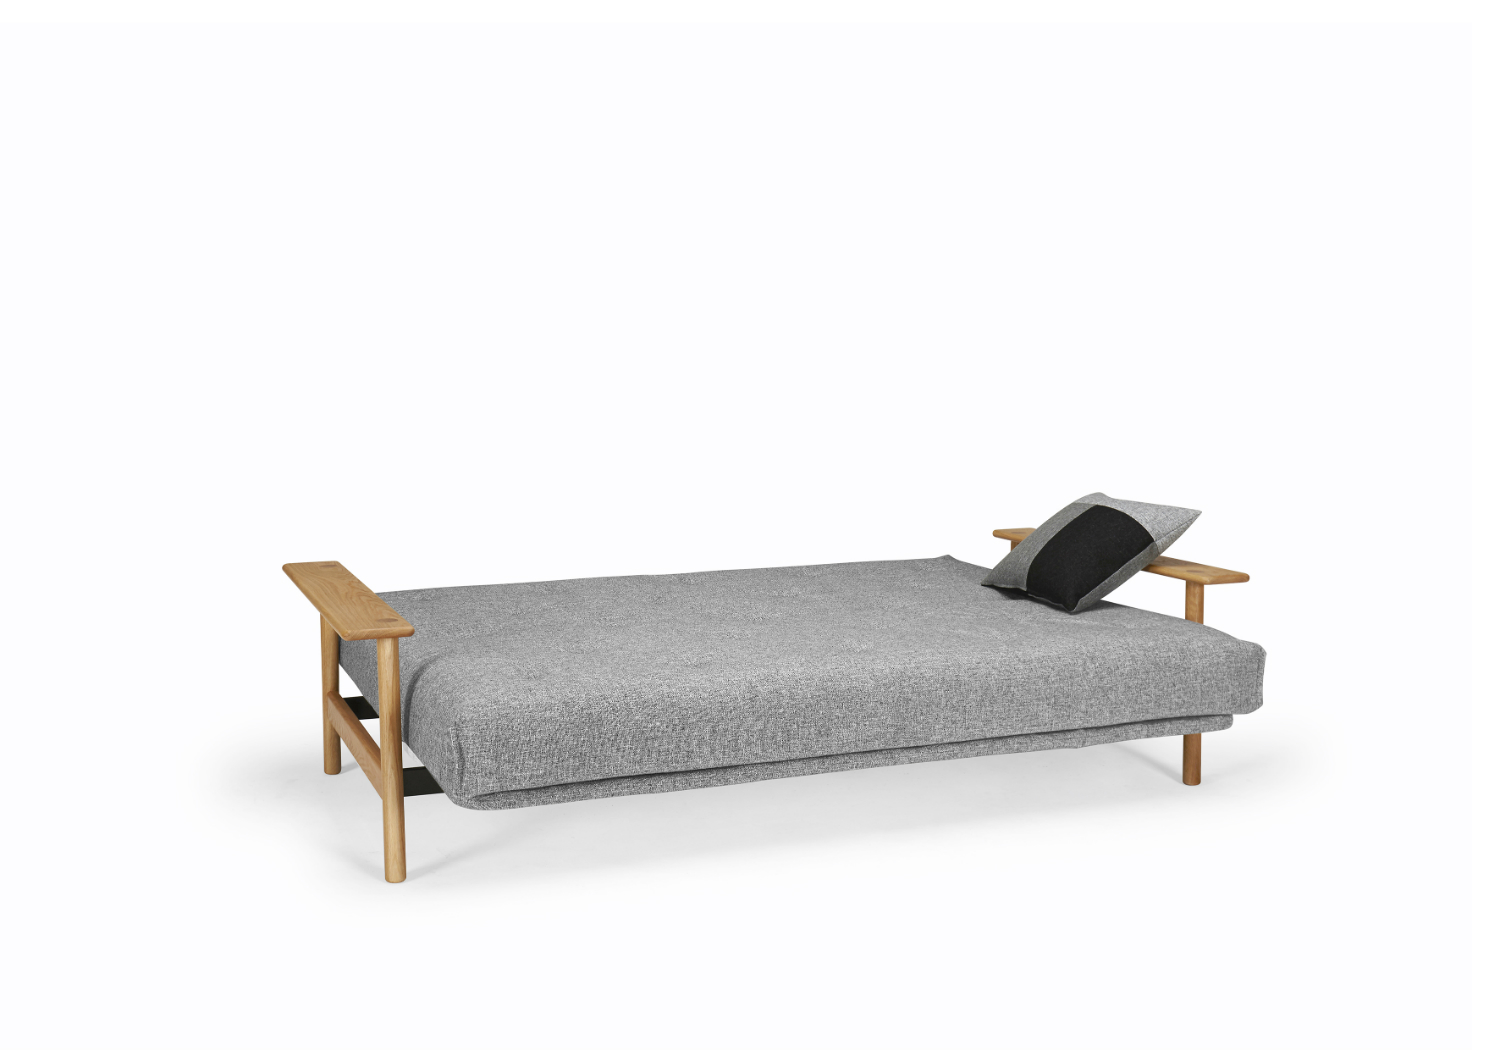 Balder innovation living australia for Sofa skandinavisches design